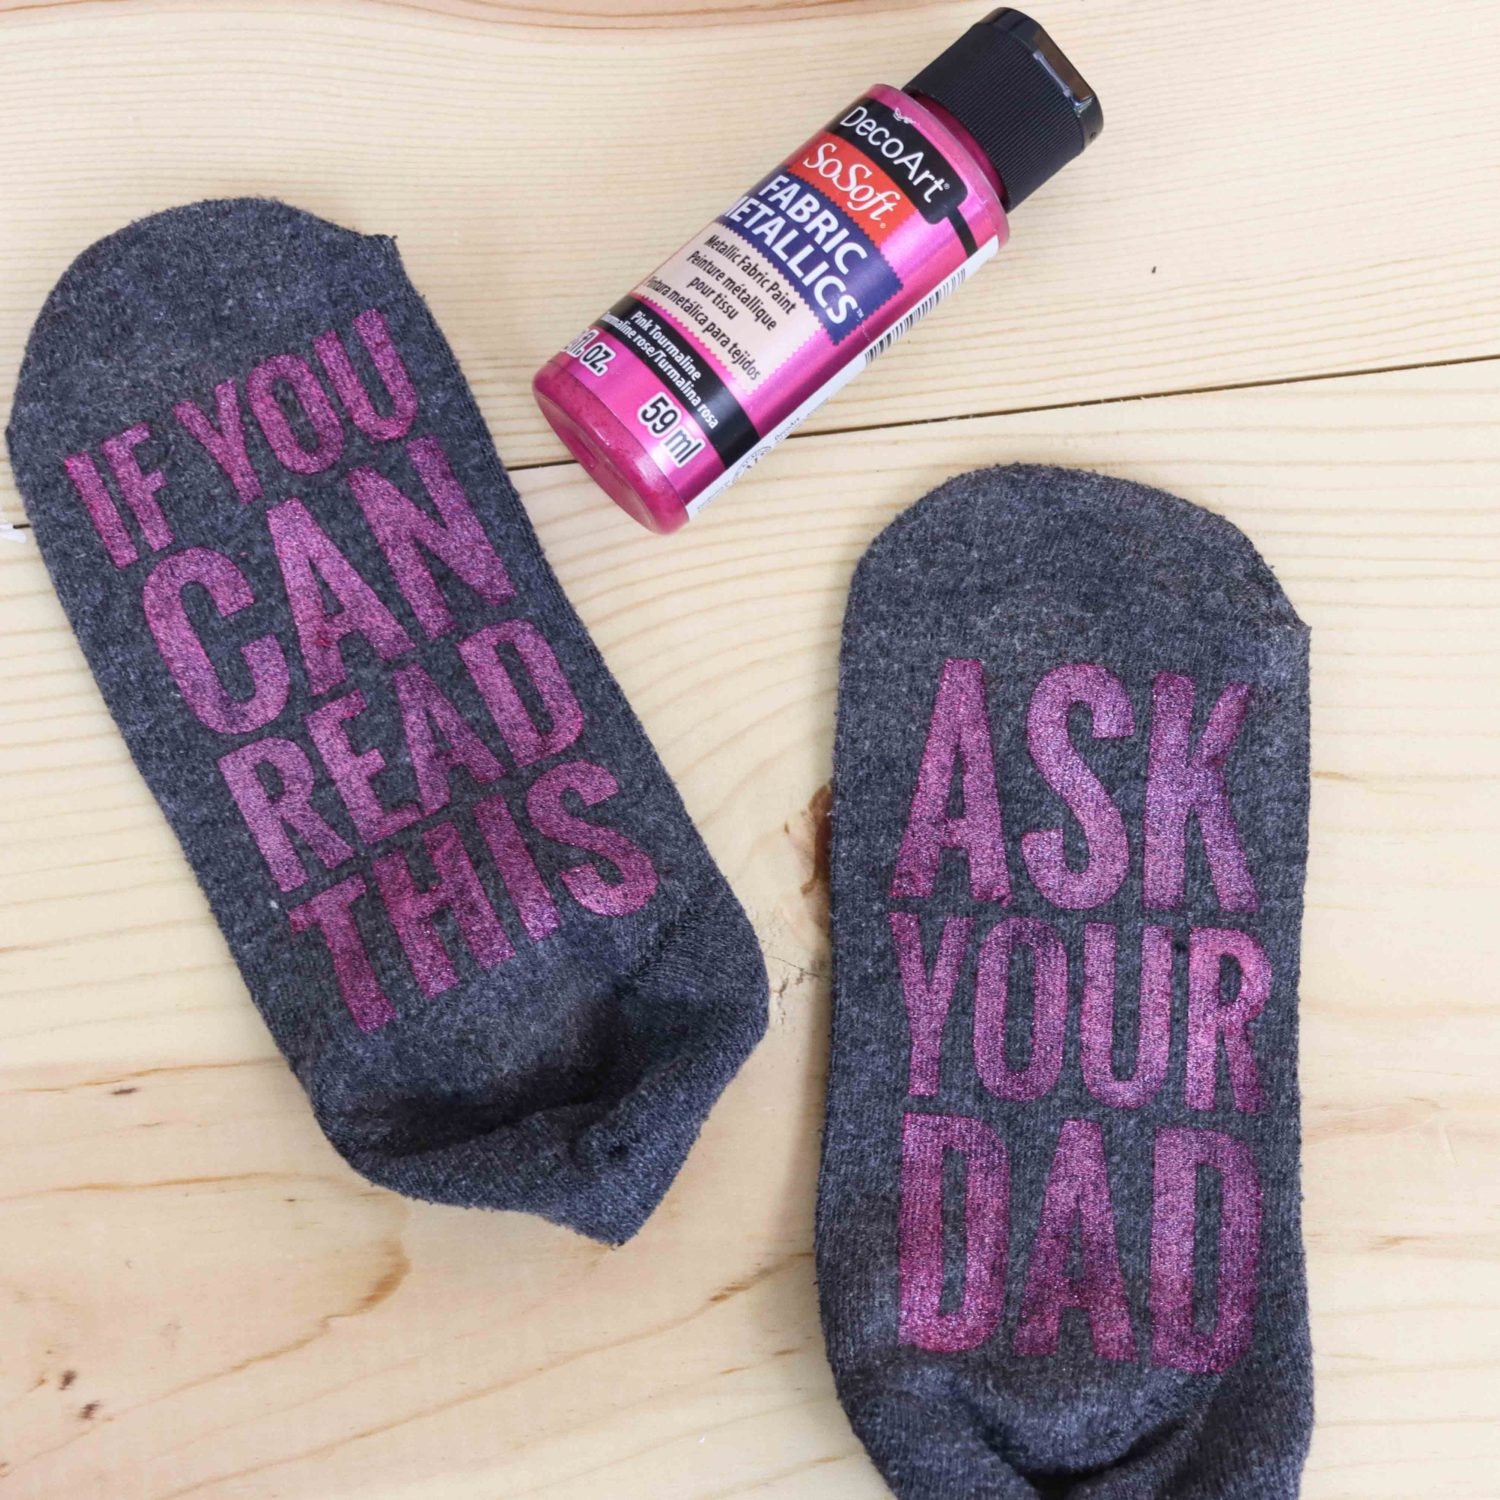 Grey Socks made with metallic fabric paint made with freezer paper and cricut